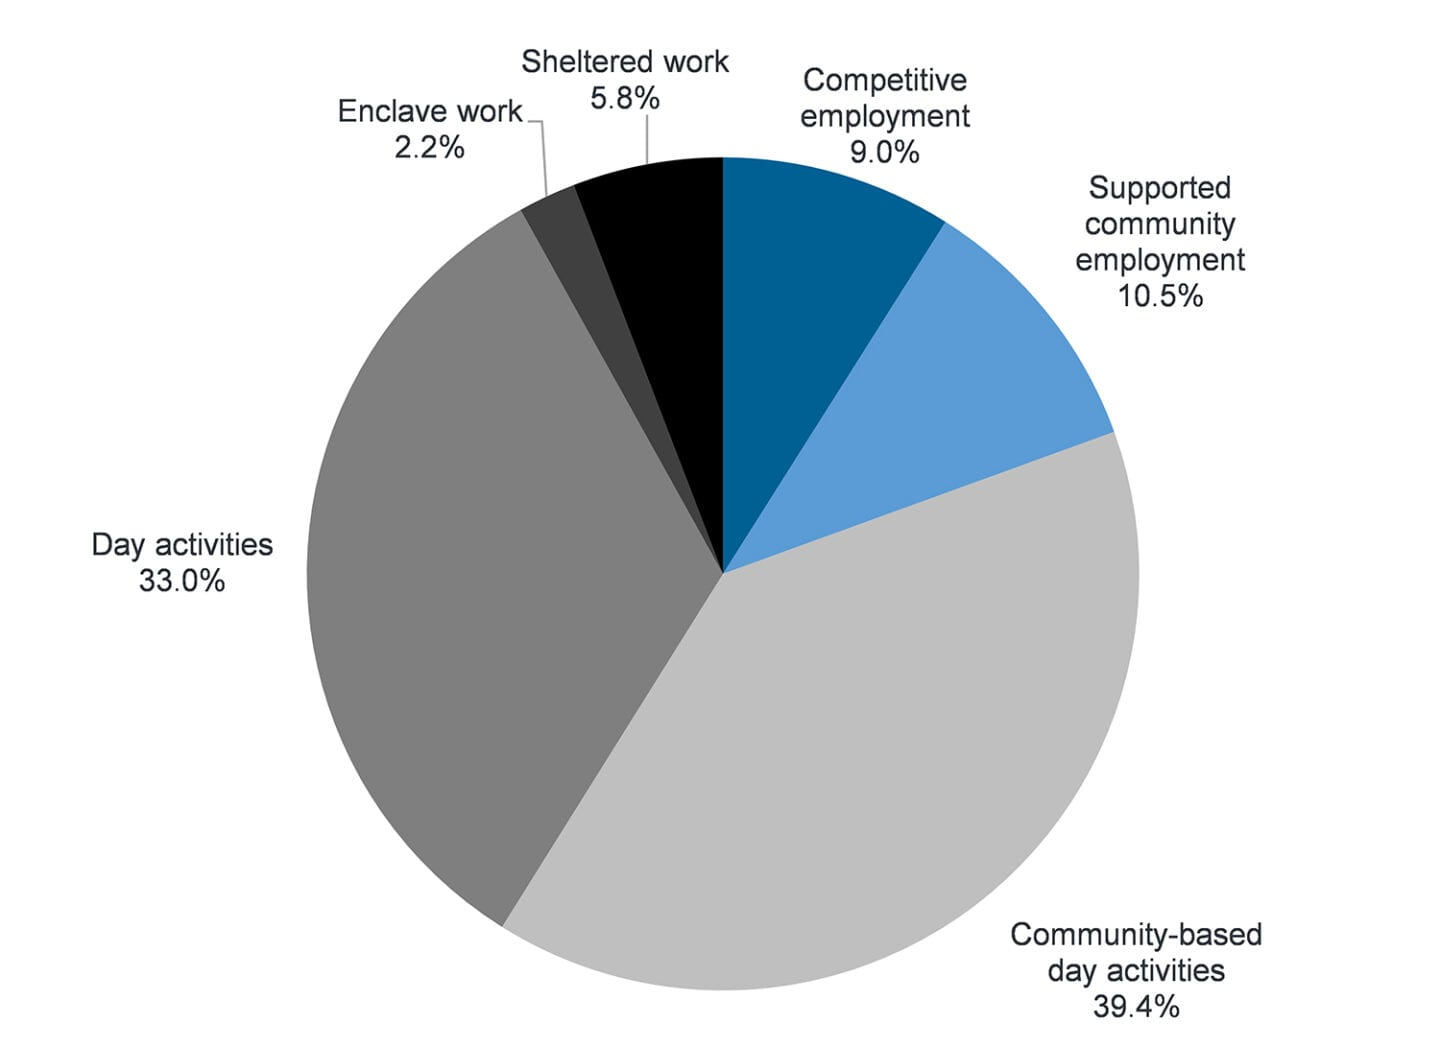 Pie chart displaying the differences in work settings for people with disabilities